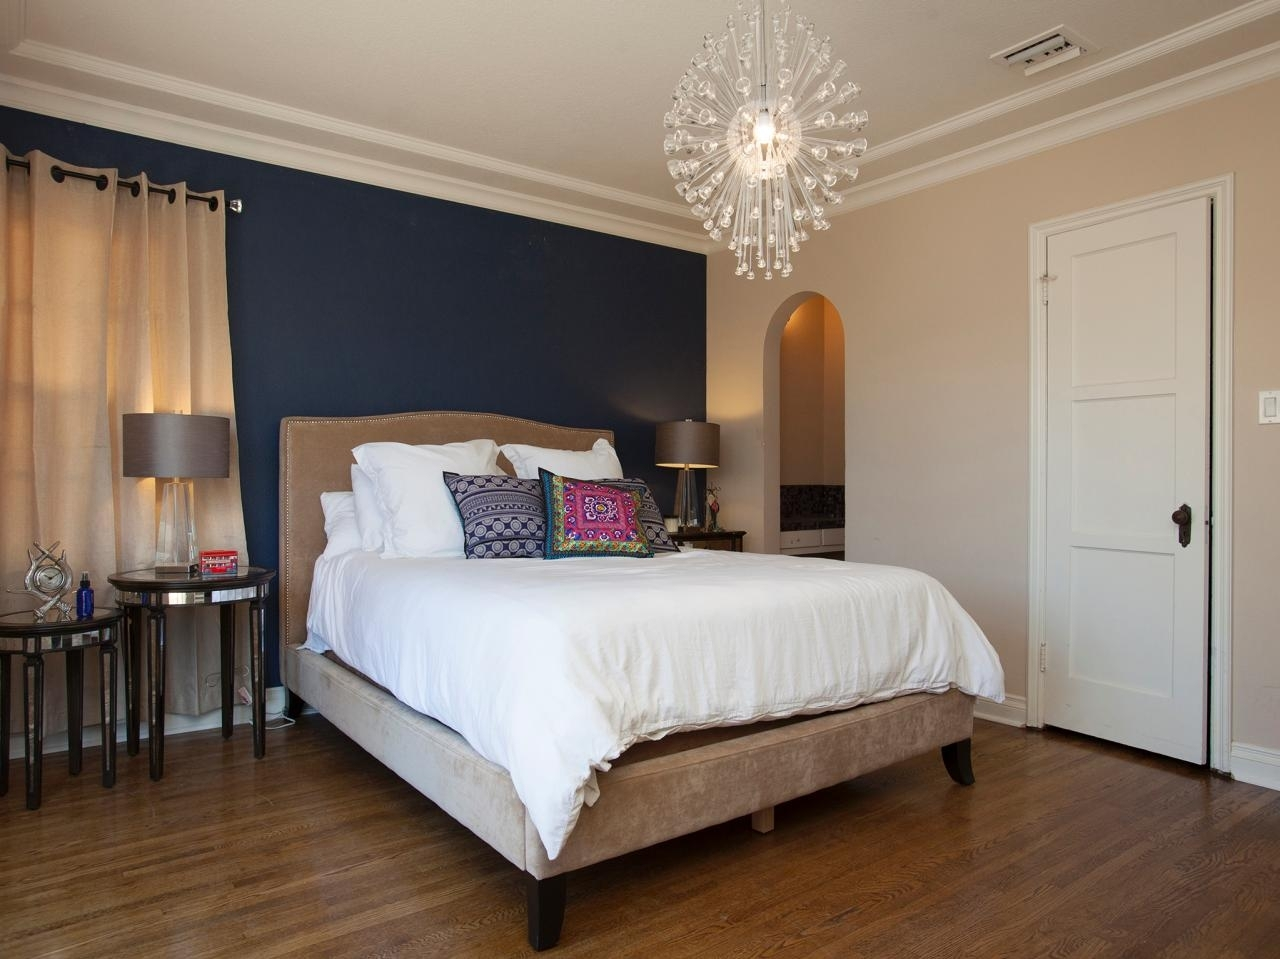 Bedroom | Dark Blue Wall Accent With Burlywood Color Base Pertaining To 2017 Wall Accents For Bedroom (View 3 of 15)